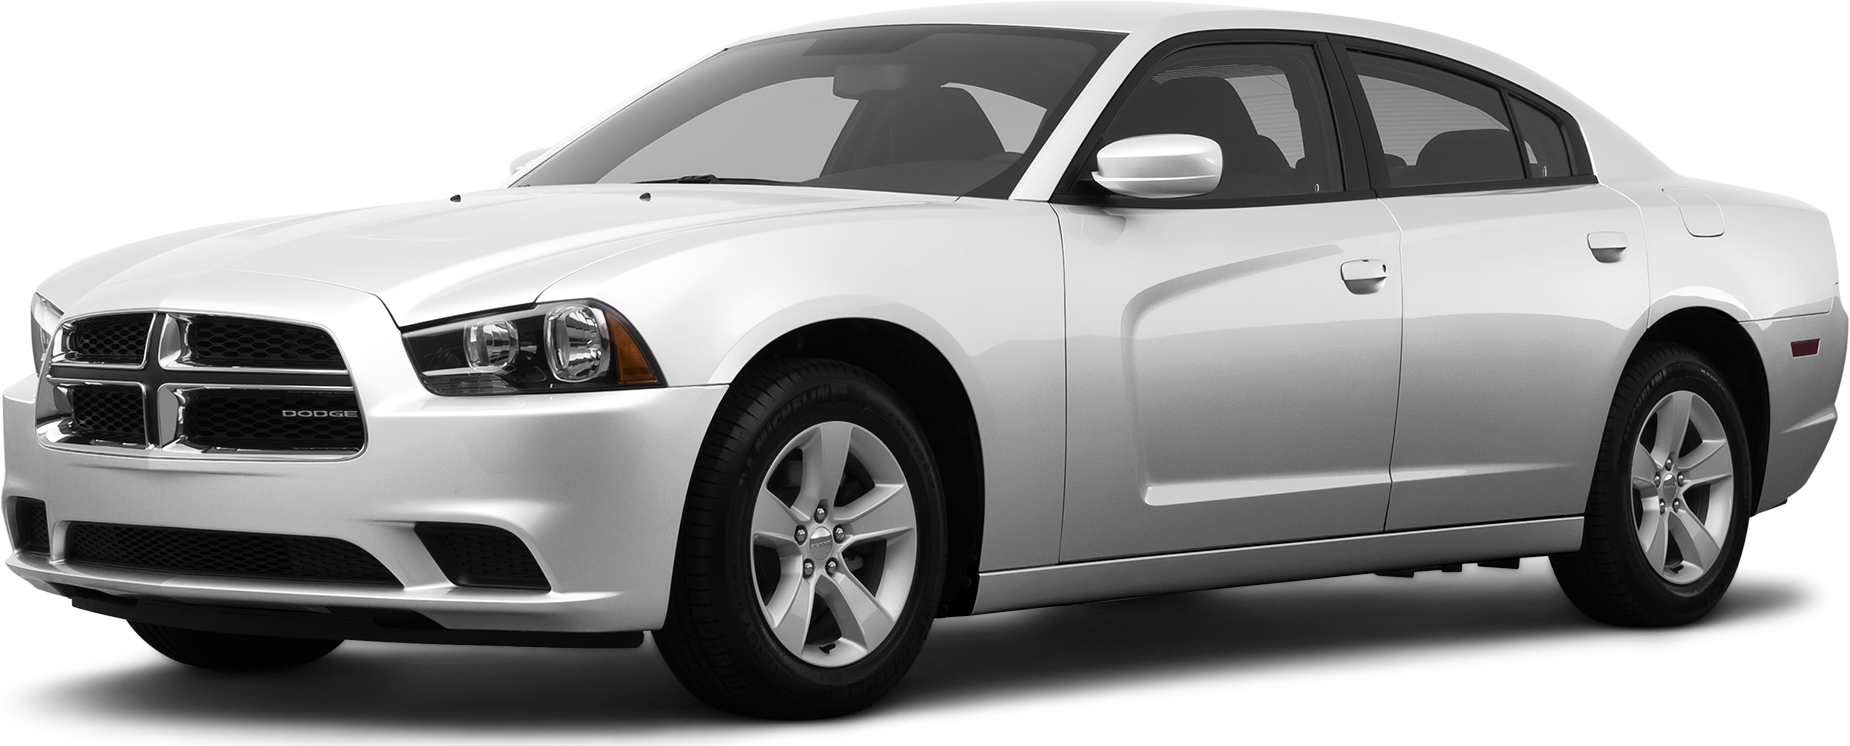 2012 Dodge Charger Values Cars For Sale Kelley Blue Book